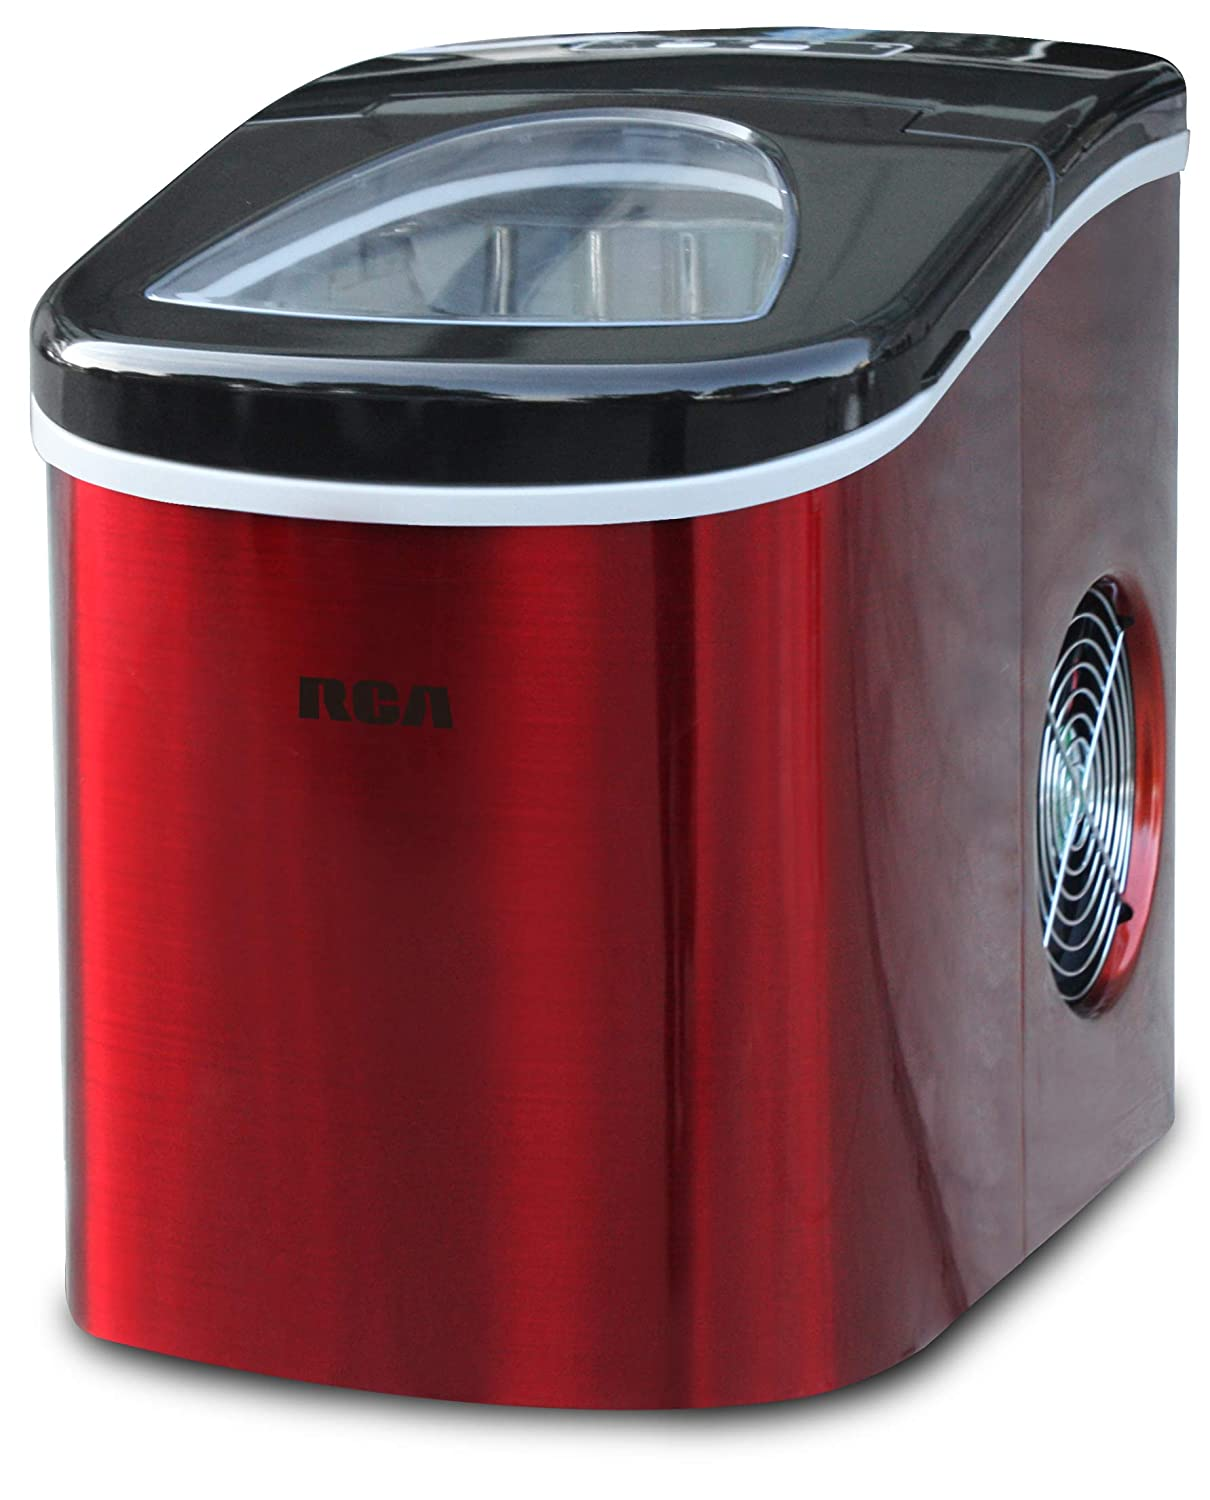 Frigidaire RIC117-SSRED Stainless Steel Ice Maker Medium Red S/S